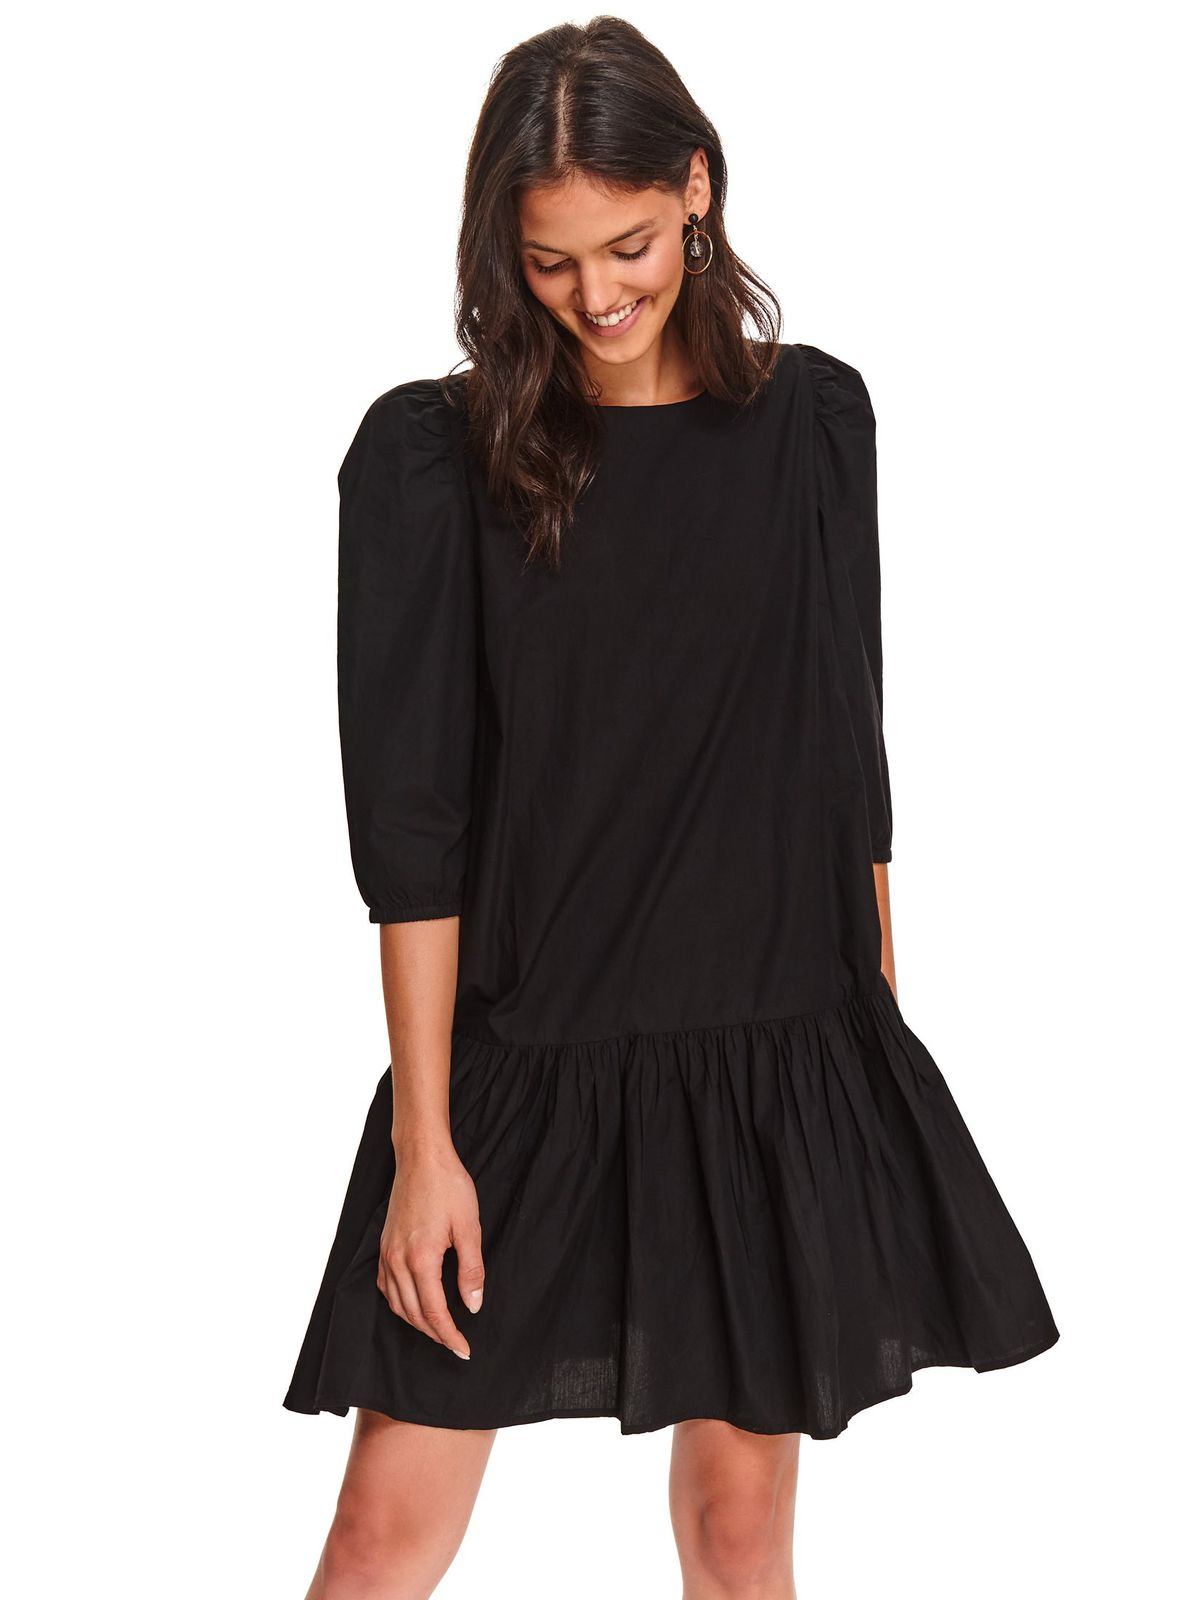 Black dress casual with easy cut short cut